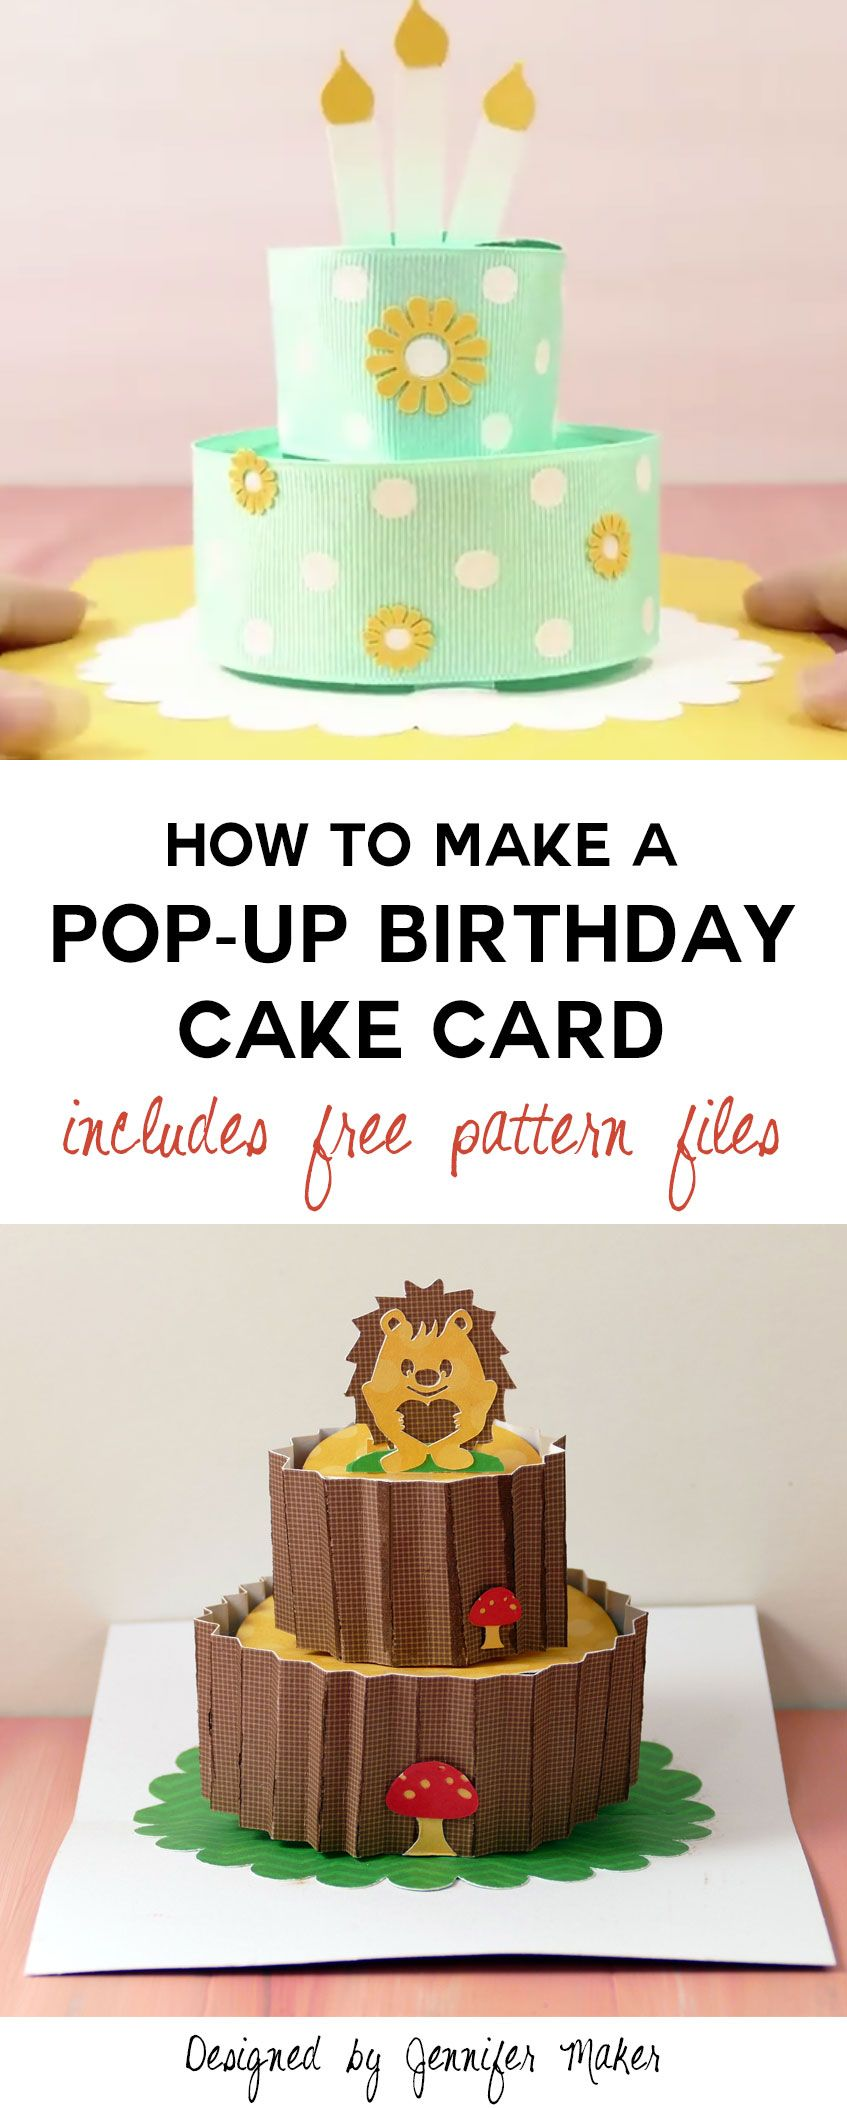 how to make a pop-up birthday cake card | best of jennifer maker